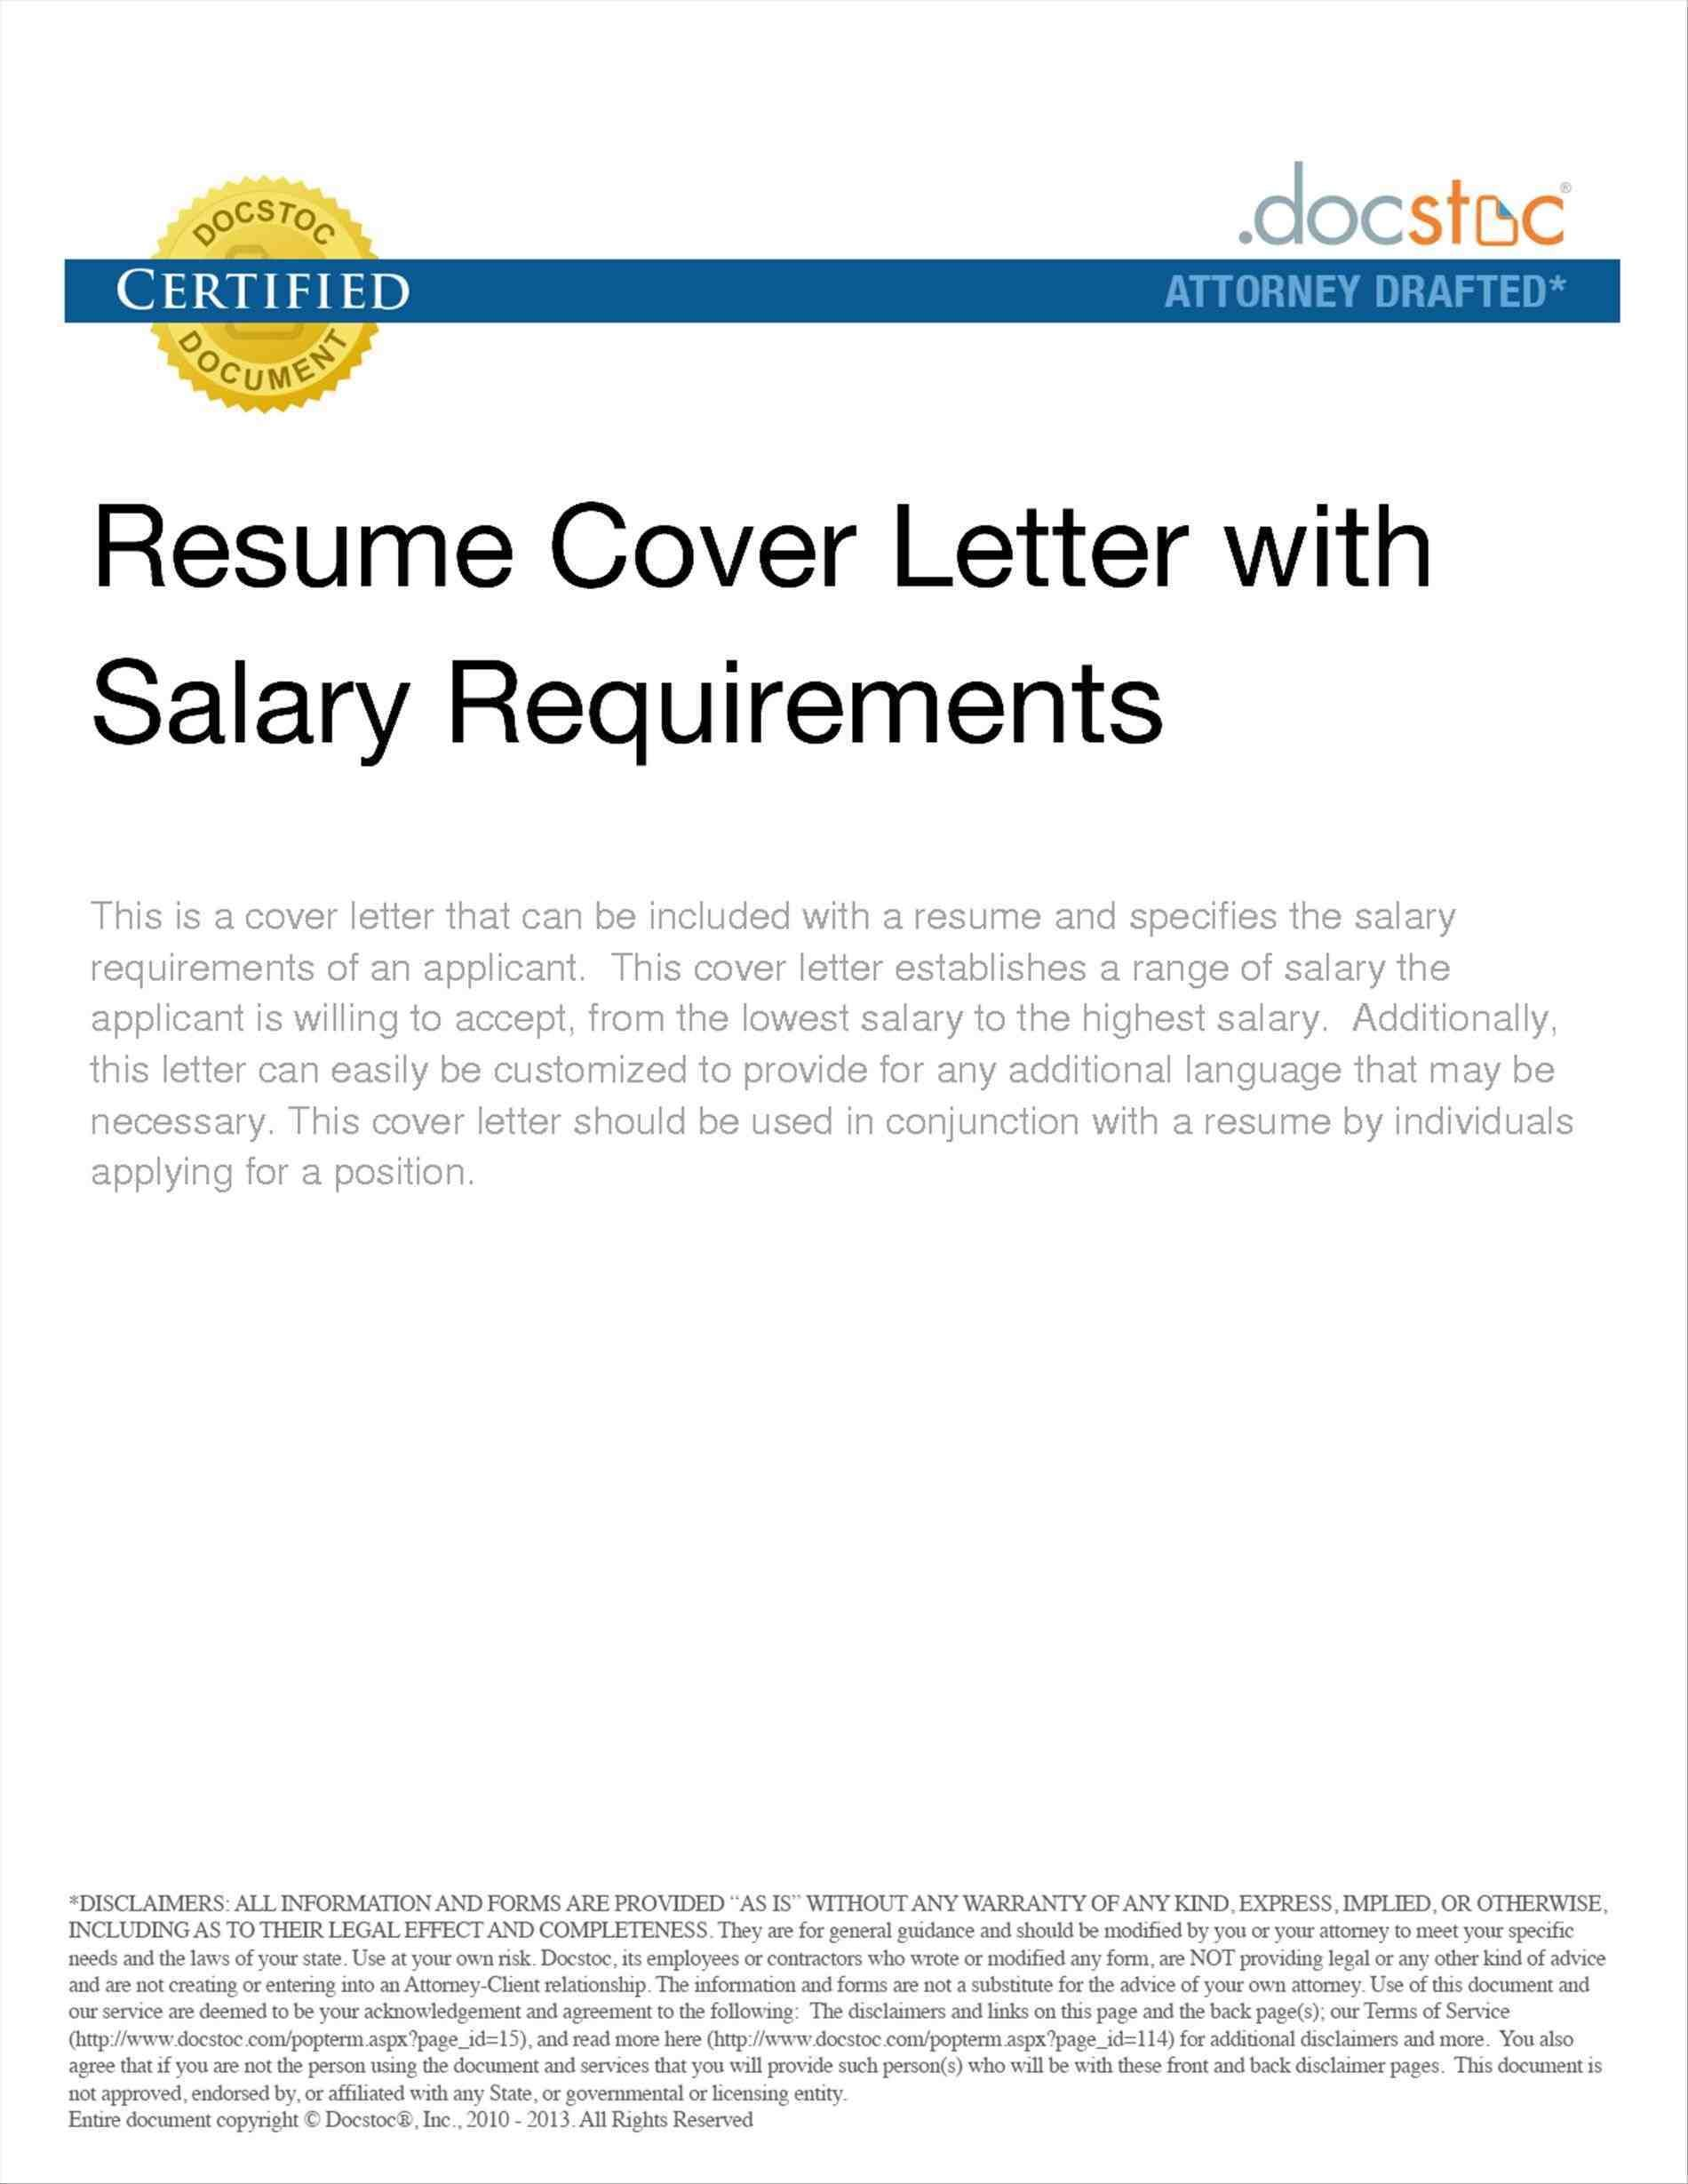 Resume And Salary Requirements Pin By Joanna Keysa On Free Tamplate Pinterest Resume